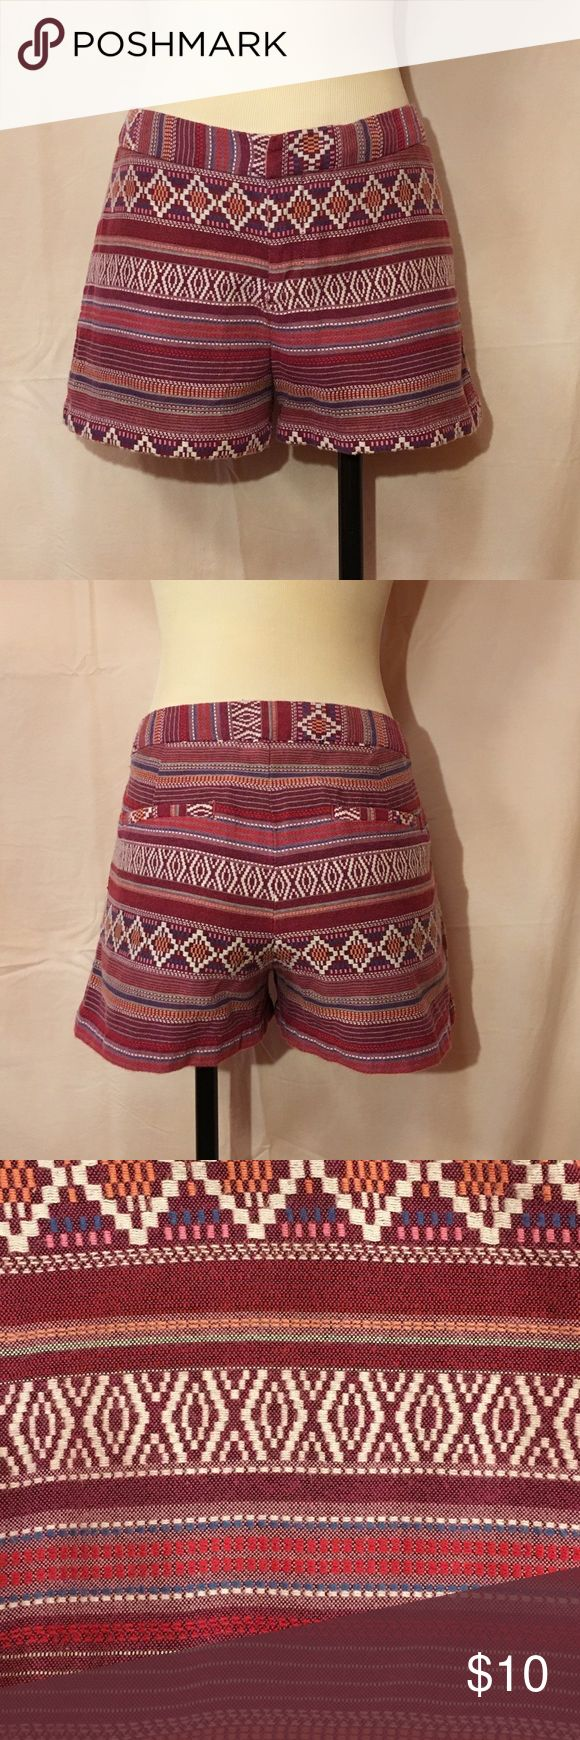 Merona Tribal Shorts Marona Tribal Shorts: Size 8. Perfect for Summer, or transition into Fall by pairing with tights, boots and a cute sweater! Good condition. Barely worn. Message me if you have any questions! :) Merona Shorts